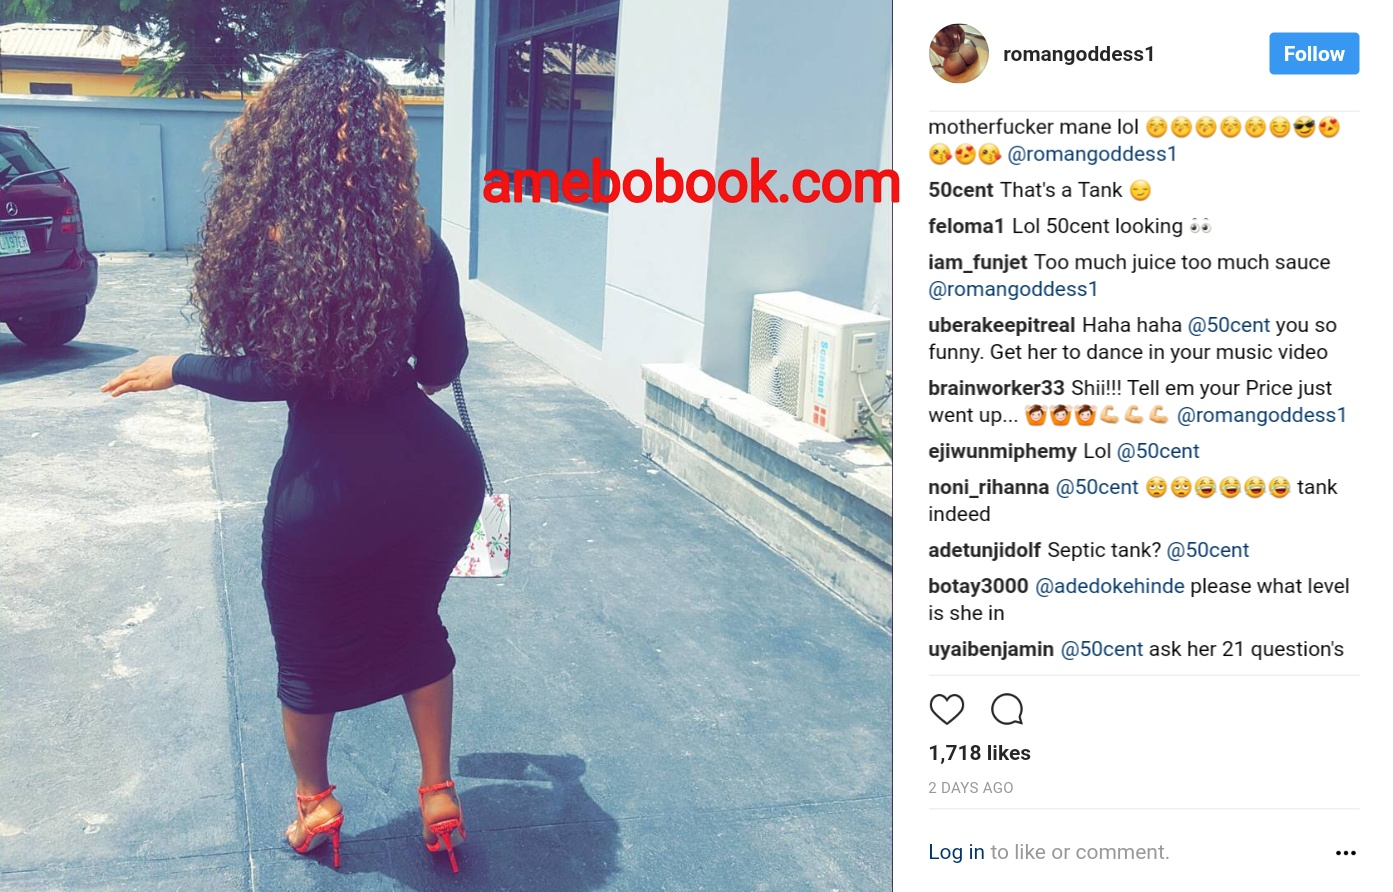 50 Cent Comments On Endowed Nigerian Girl Roman Goddess Instagram Page (1)